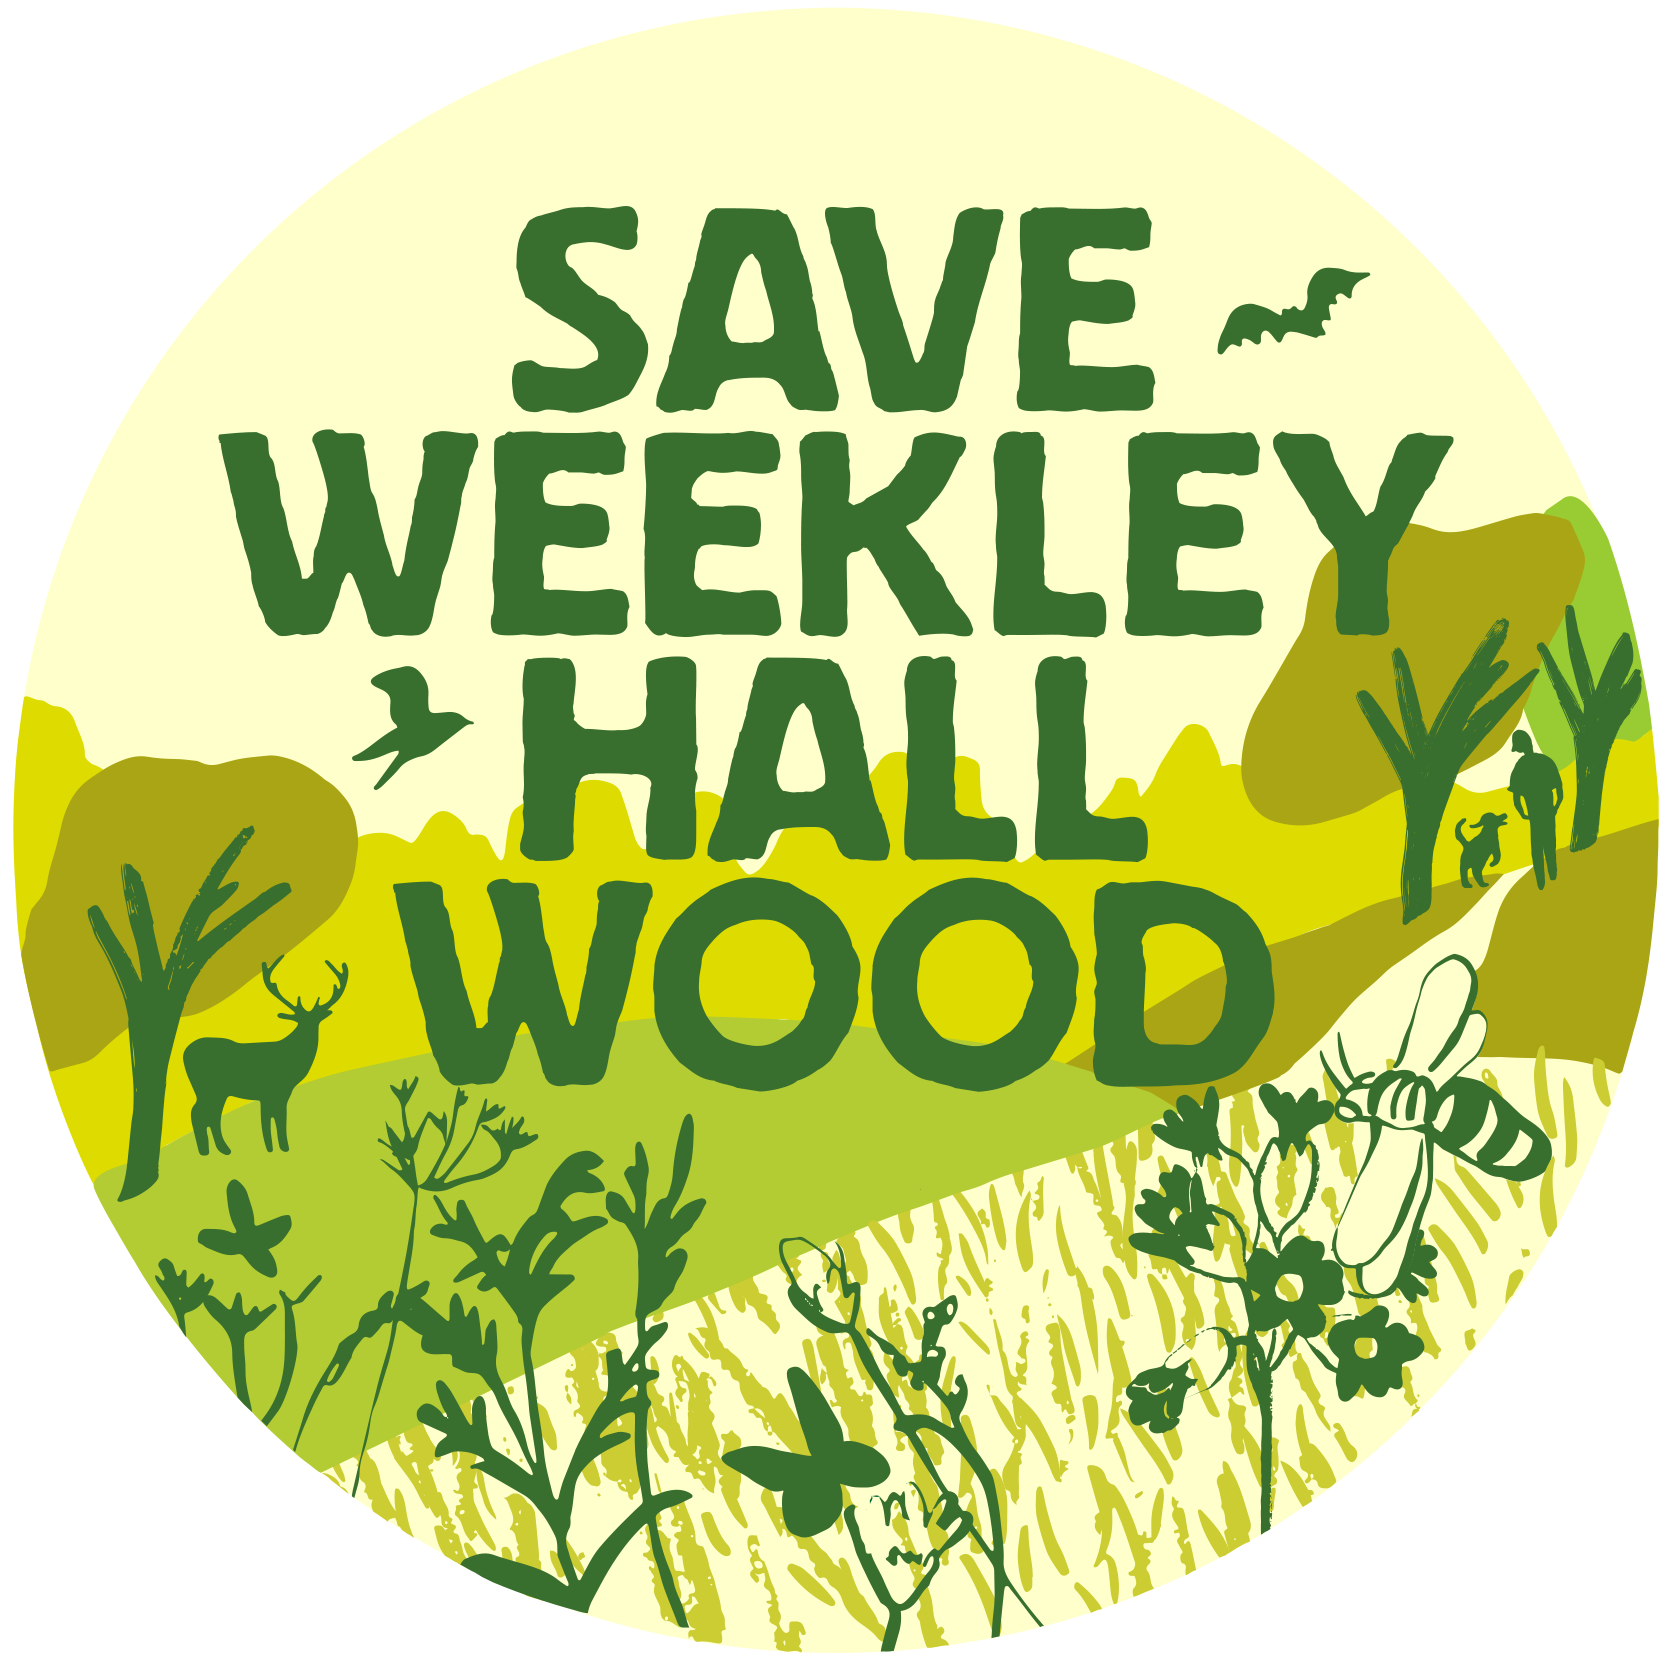 Save weekley hall wood